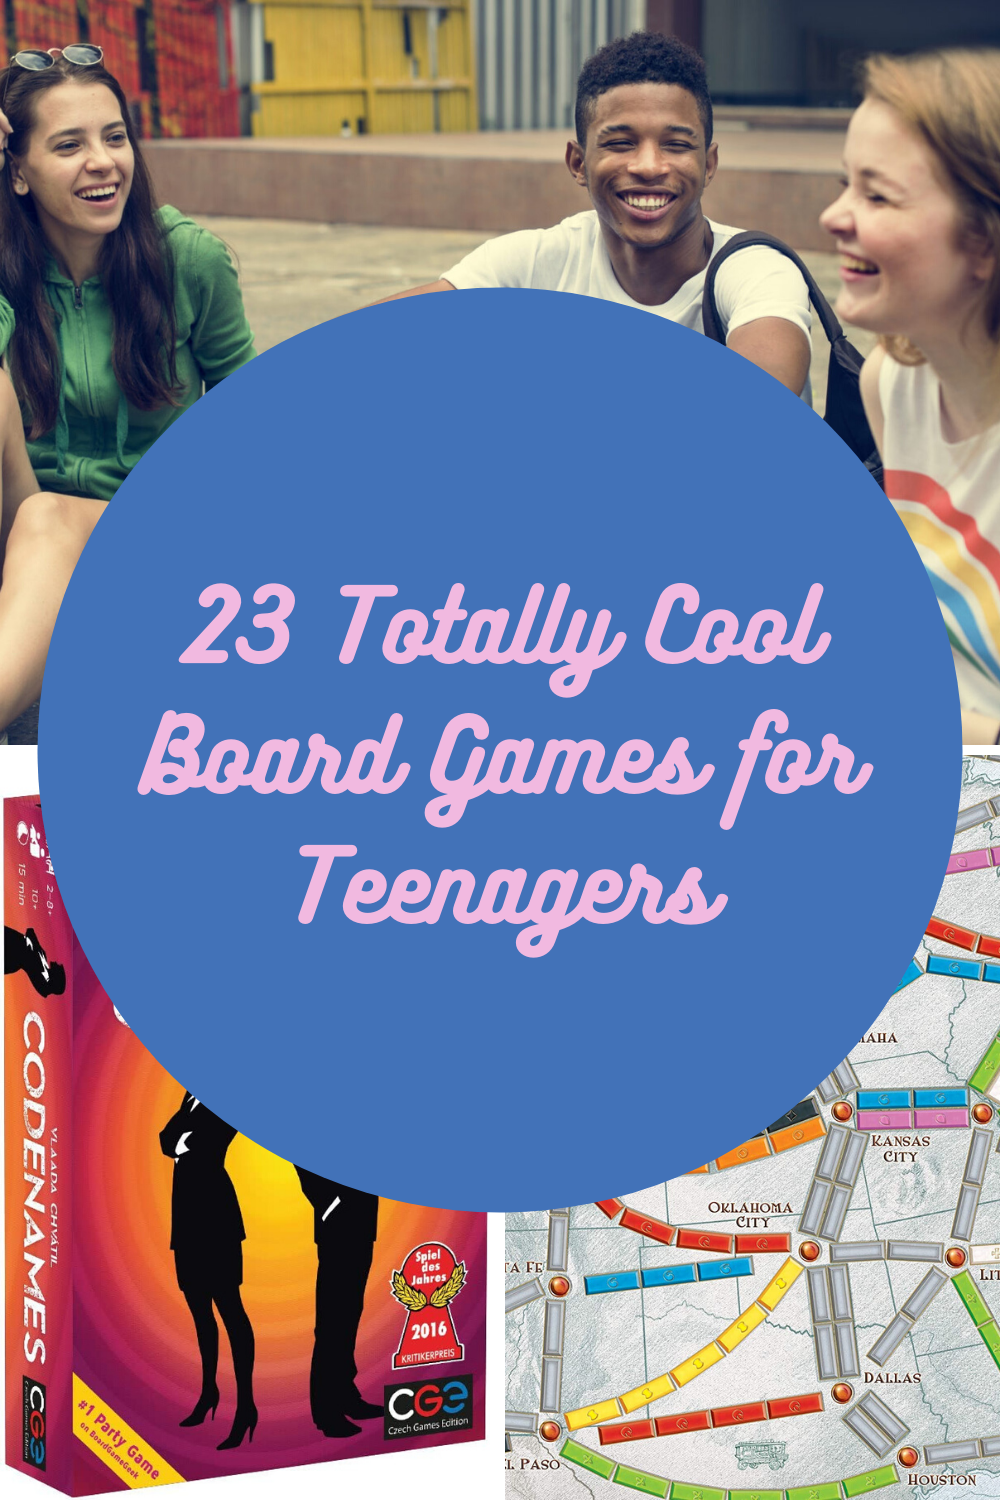 Board Games for teenagers